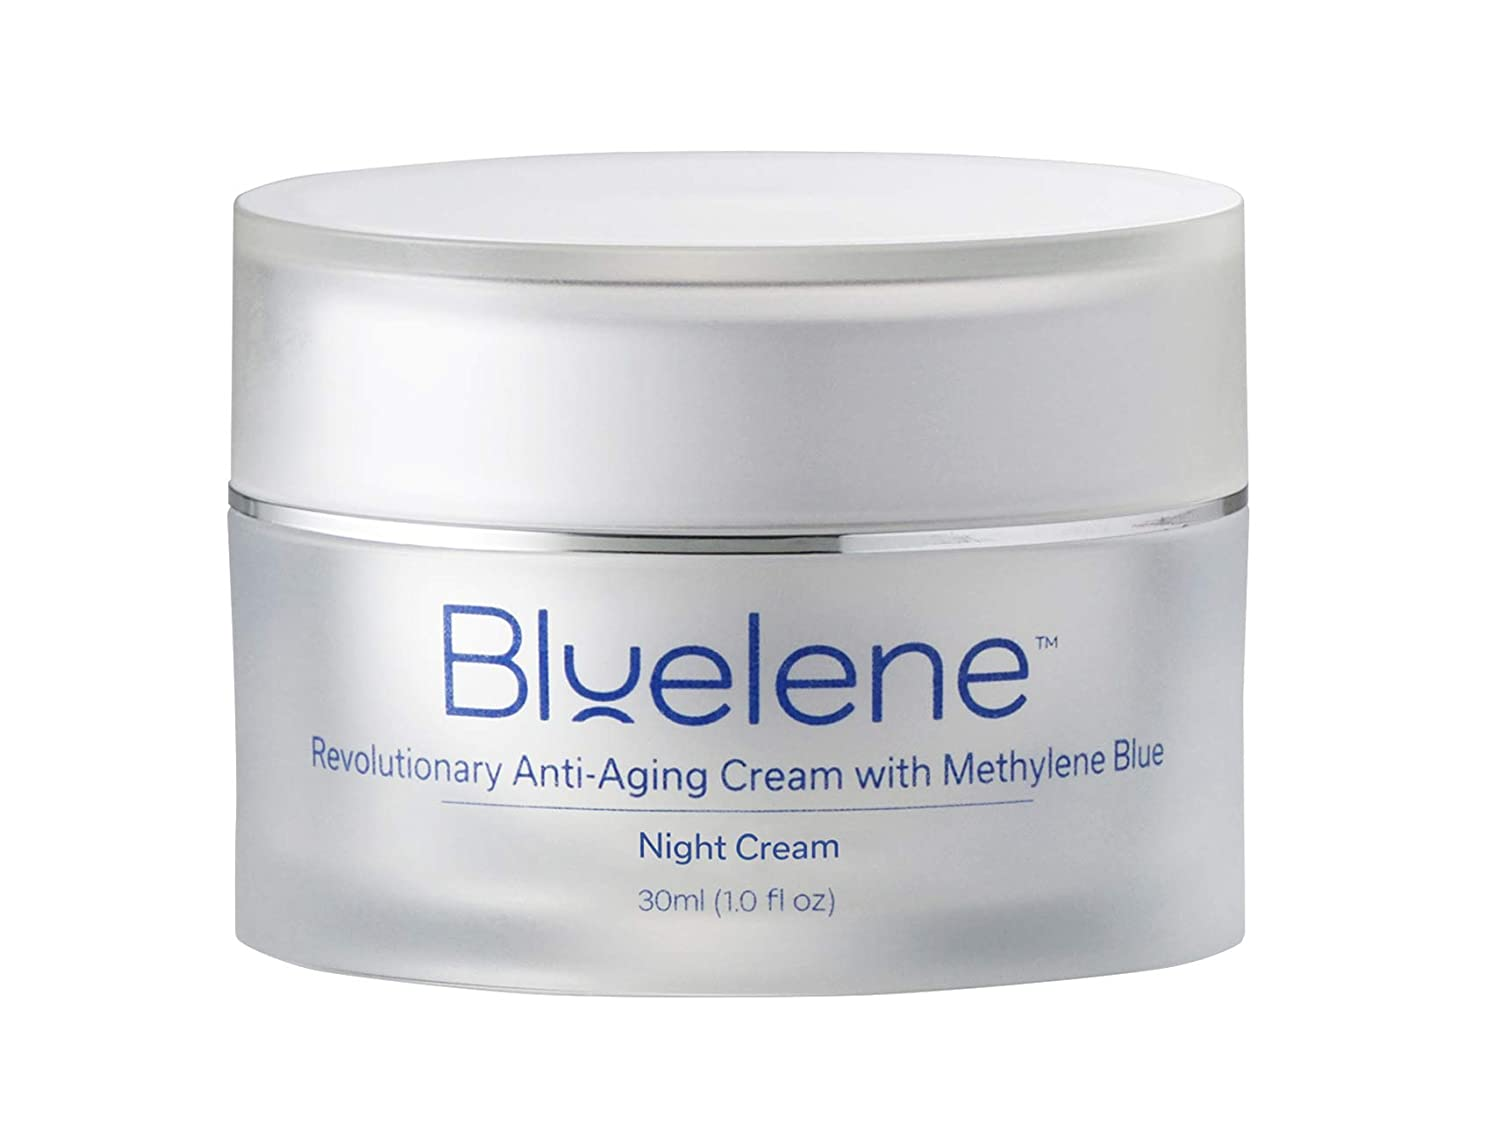 Bluelene Revolutionary Anti-Wrinkle Face Cream with Methylene Blue (30 ml)